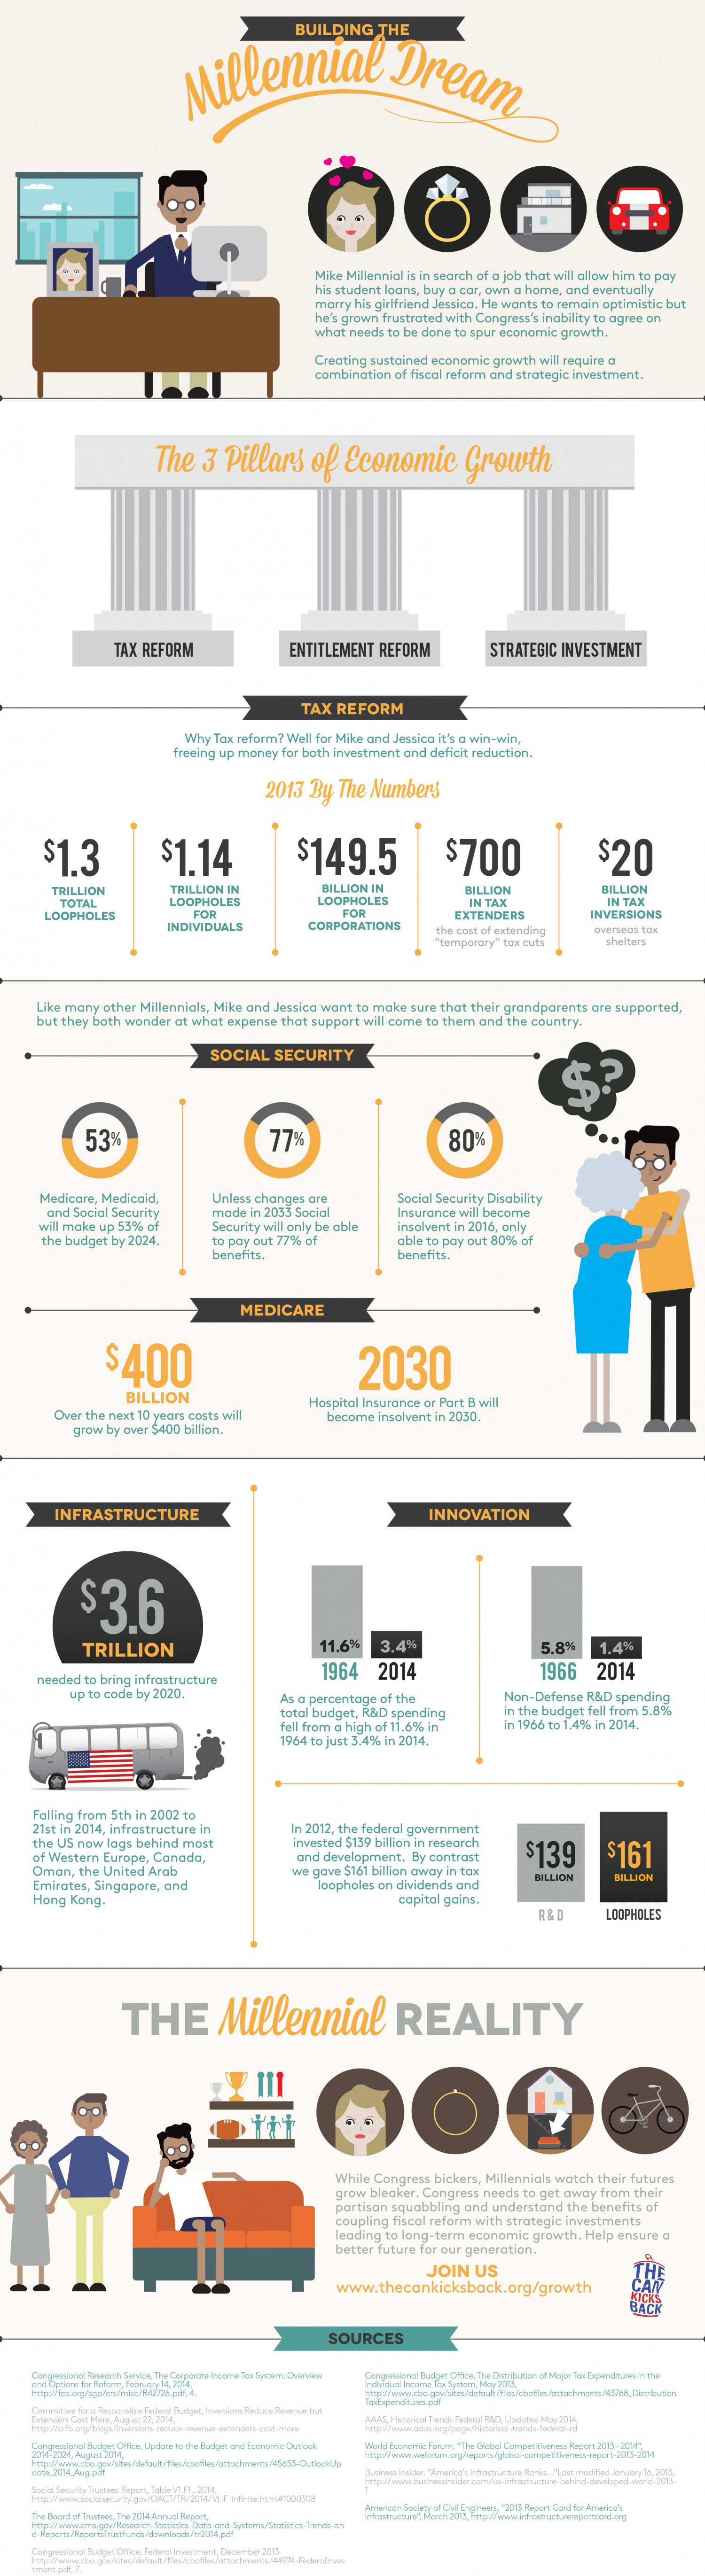 Economic Growth - Millennial Reality  Infographic